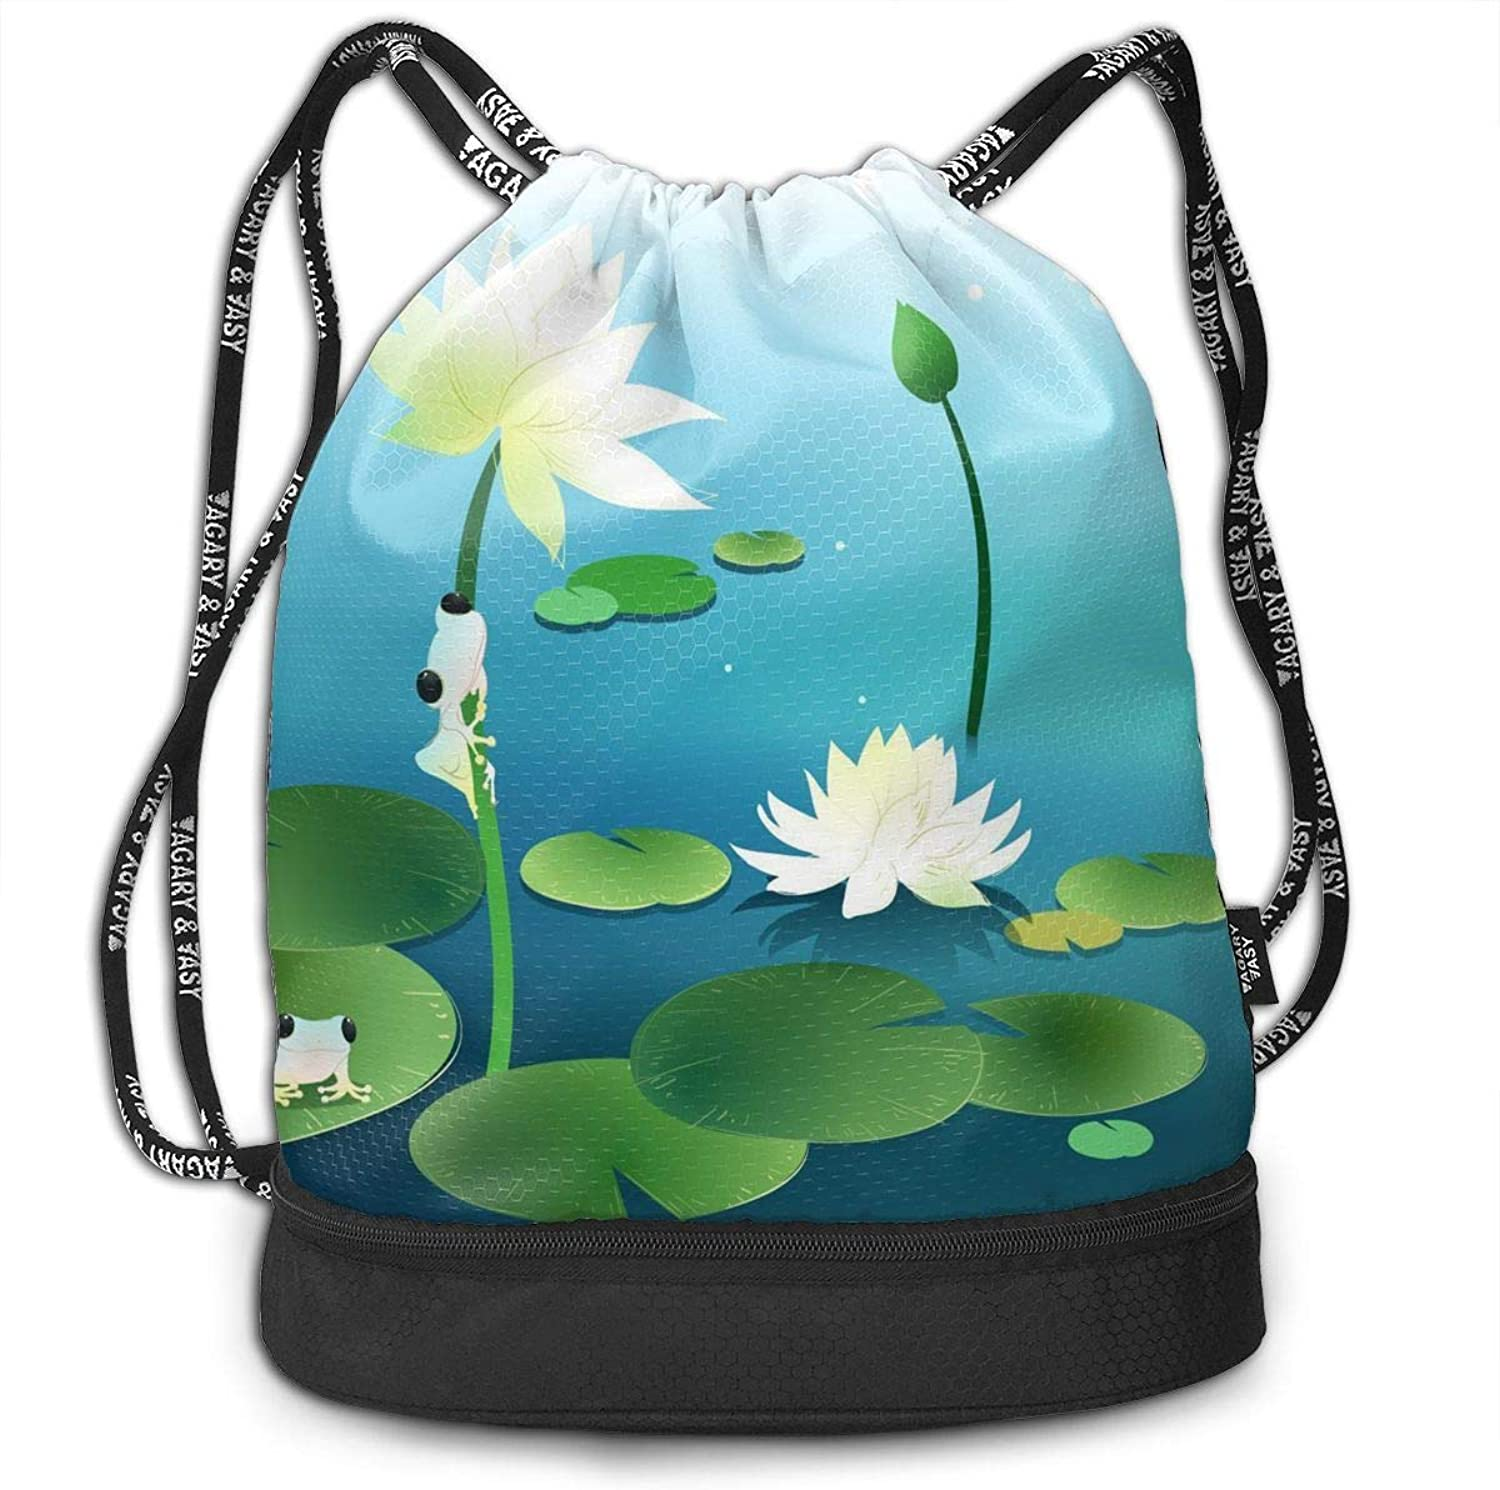 39290d2ef6136 Gymsack Small Frogs On Lotus Print Drawstring Bags Hiking Sack ...